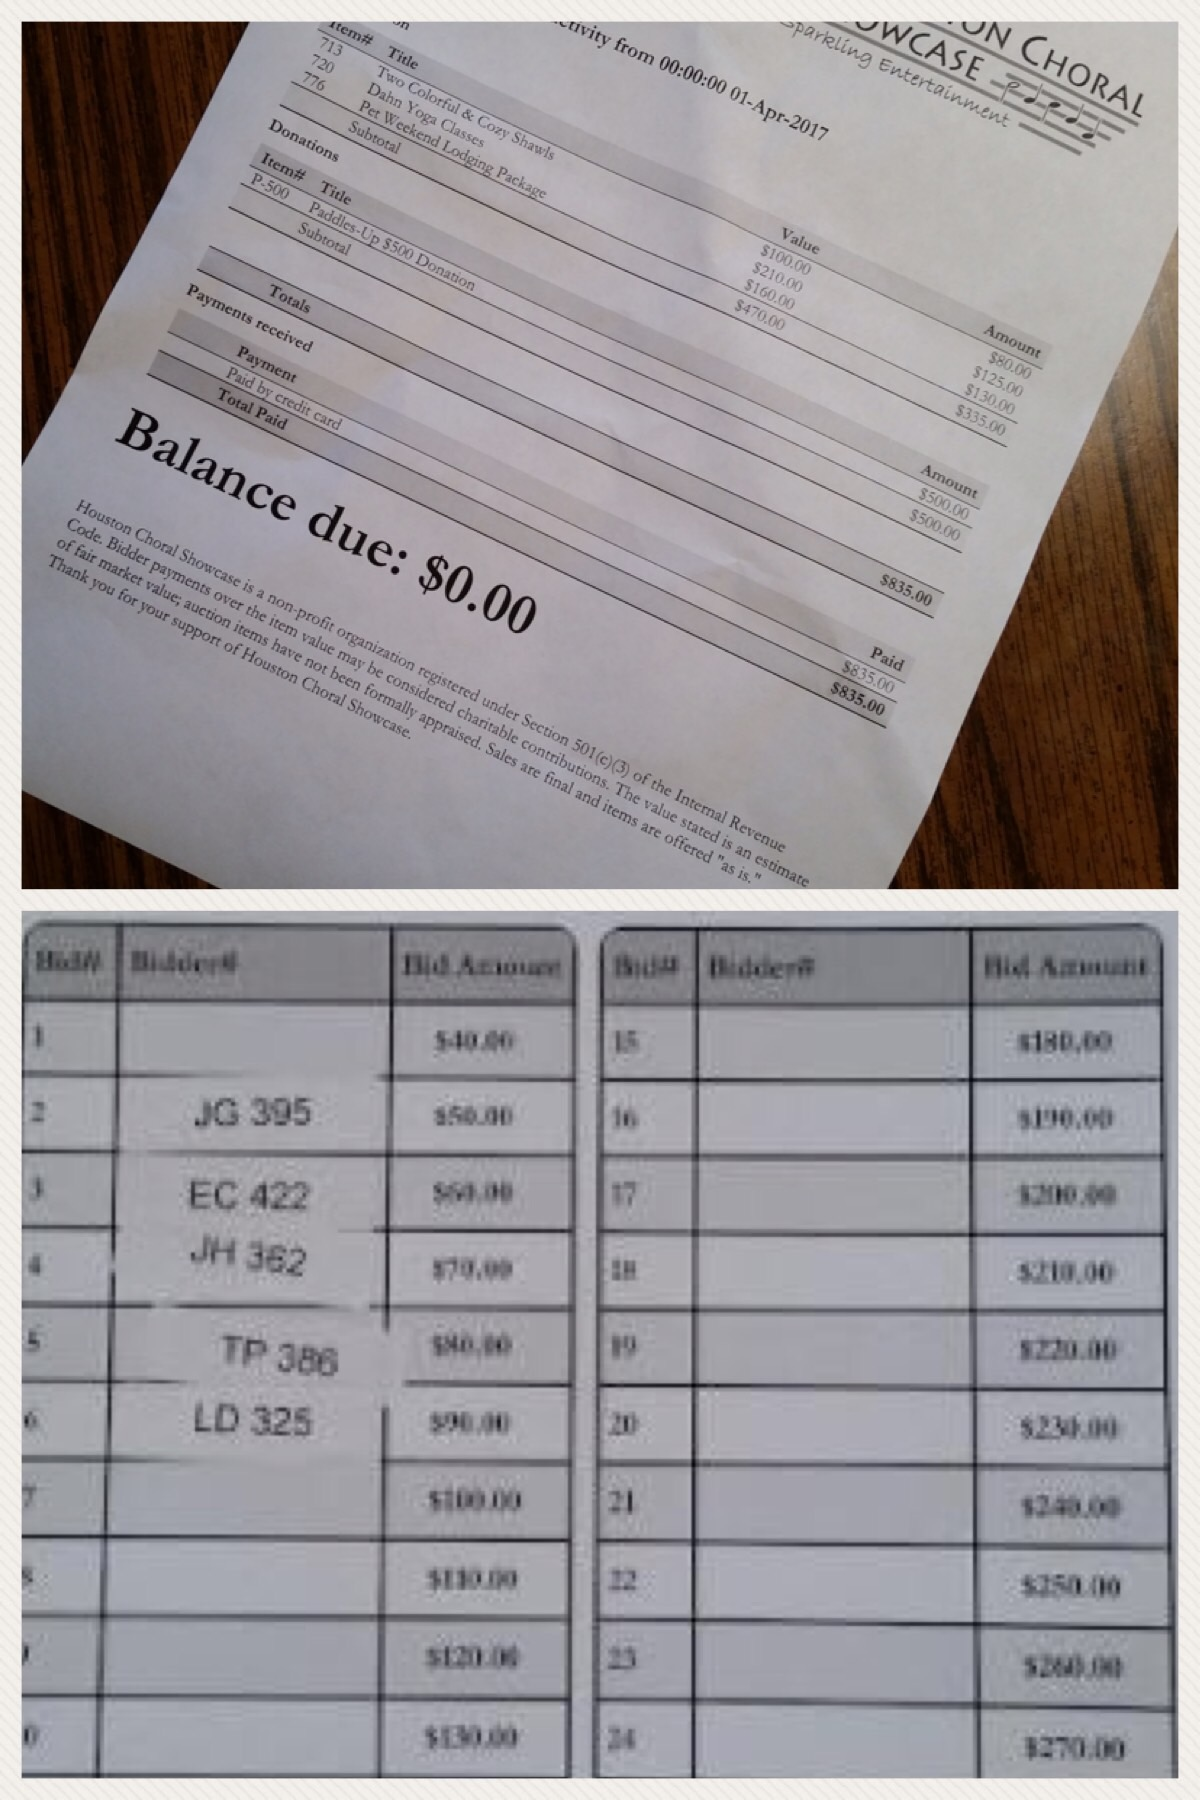 Houston Choral bid sheets and reciepts.JPG